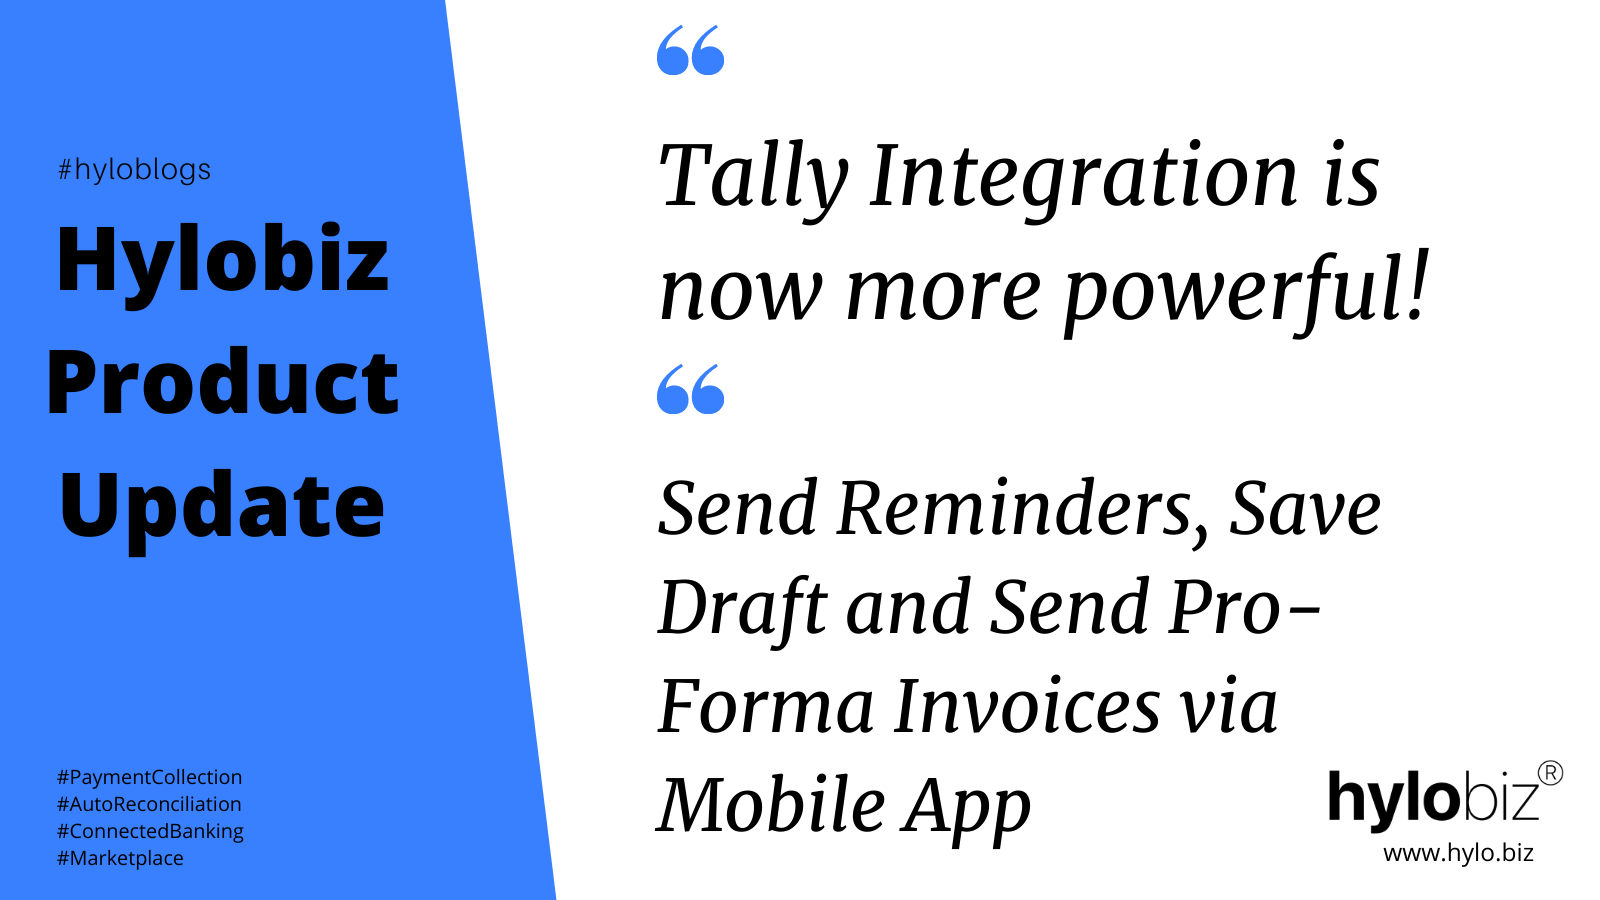 Hylobiz Tally Integration and Hylobiz Mobile App